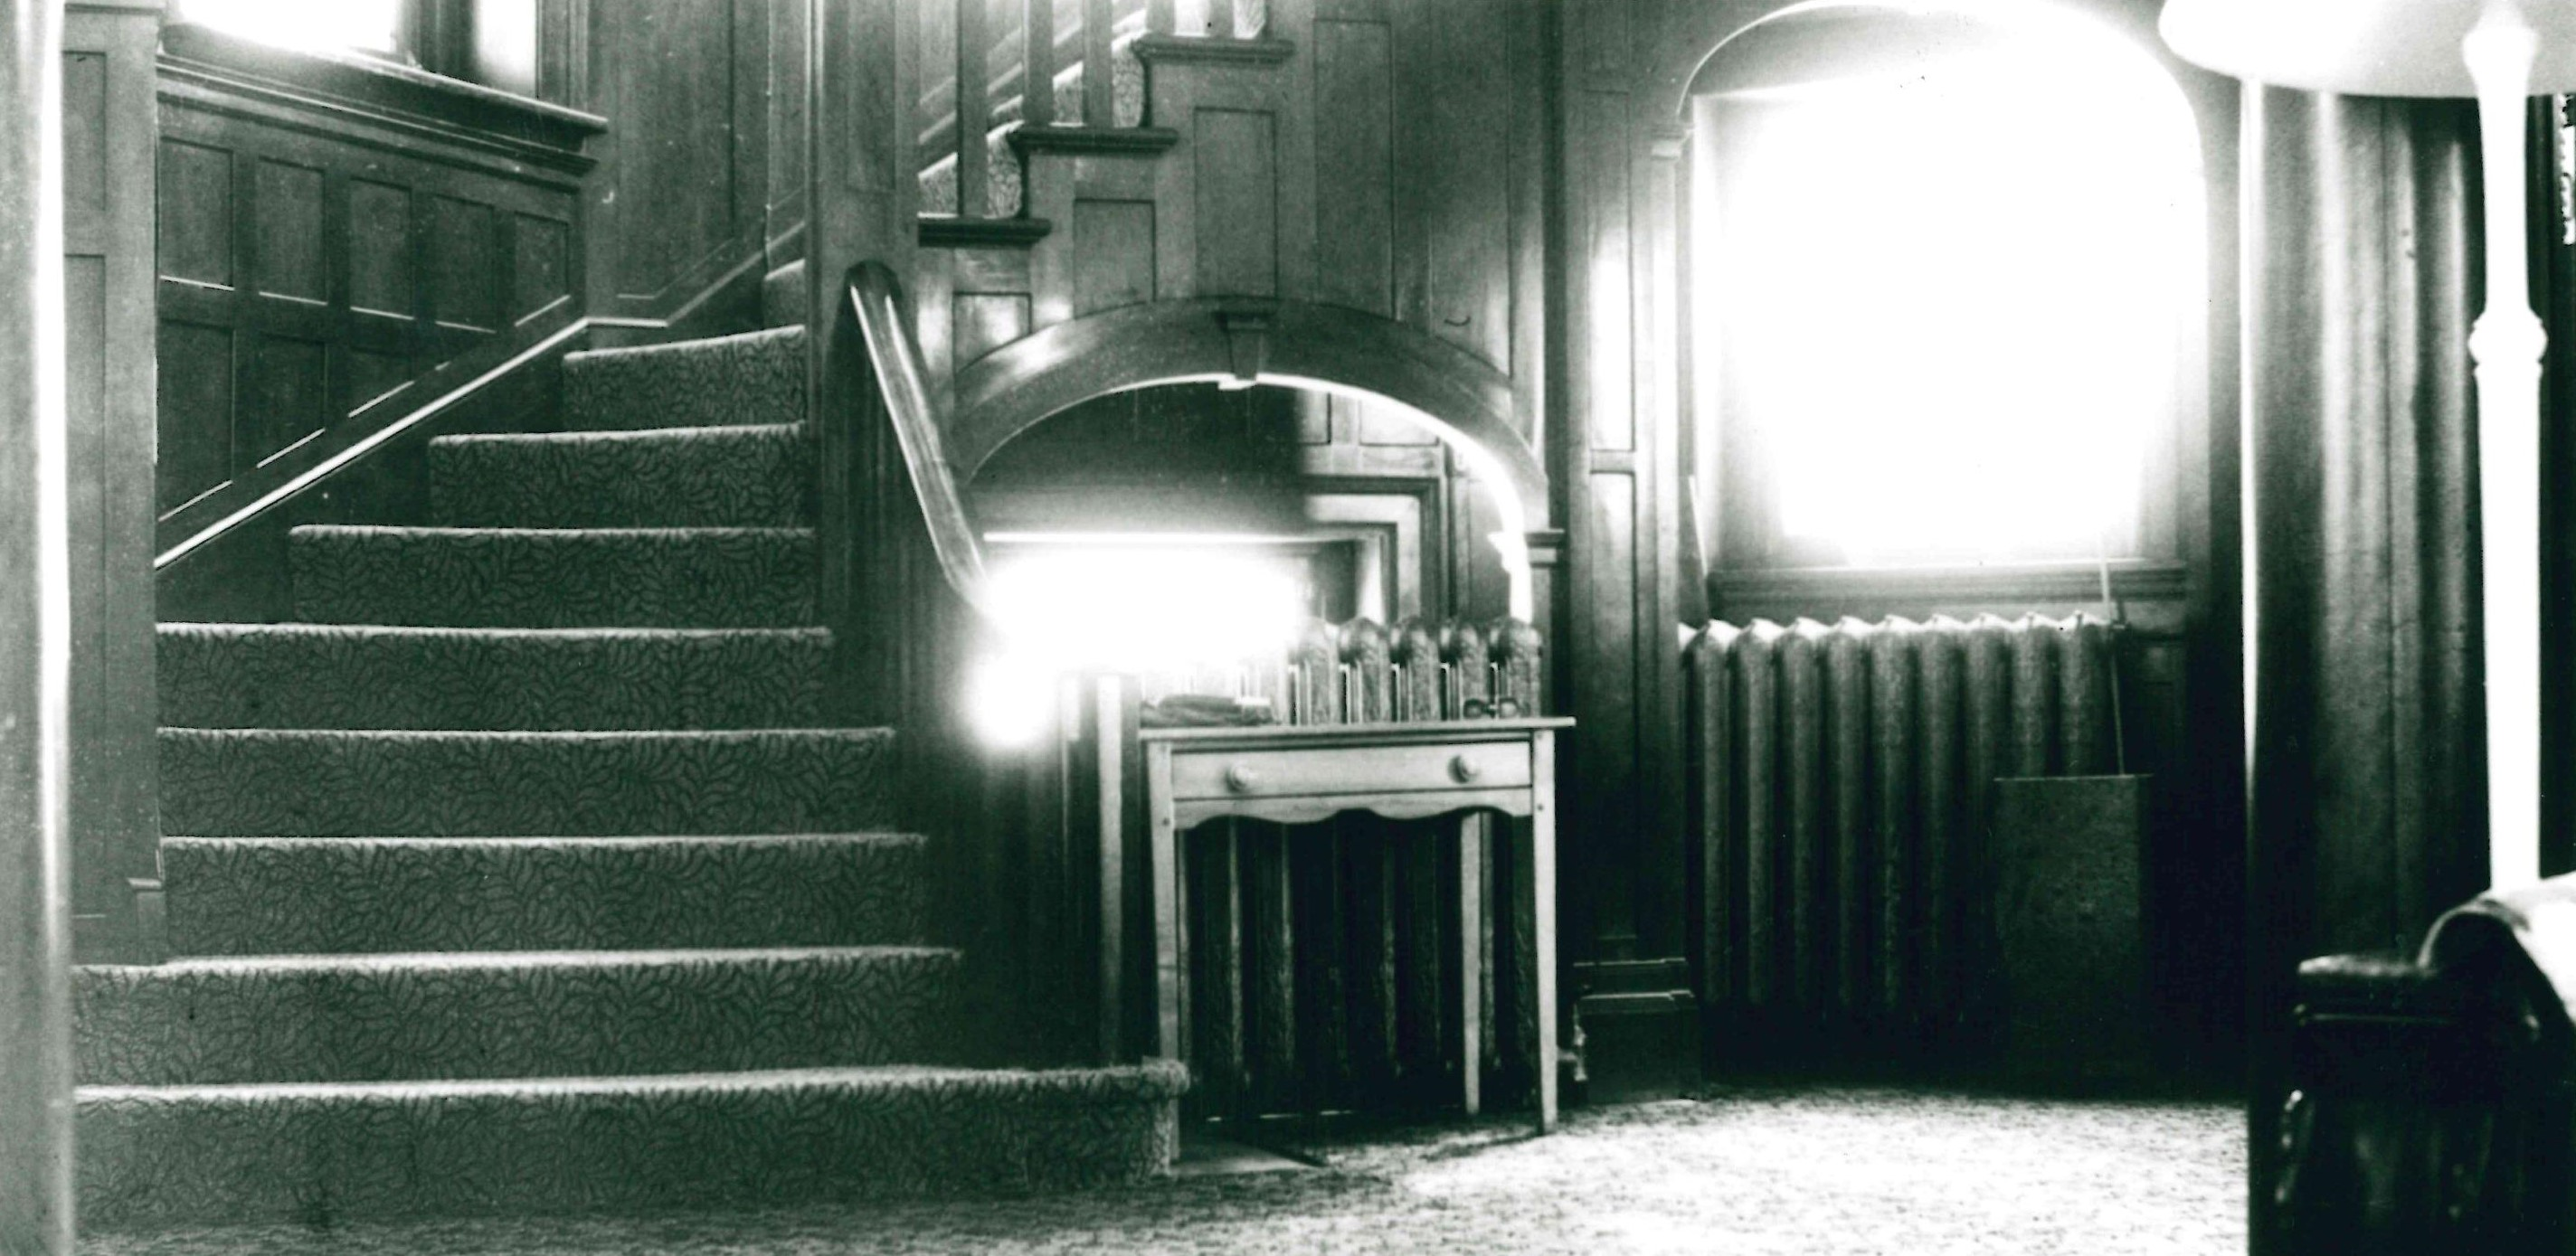 Image 2, Main Staircase during Red Cross era, 1950's